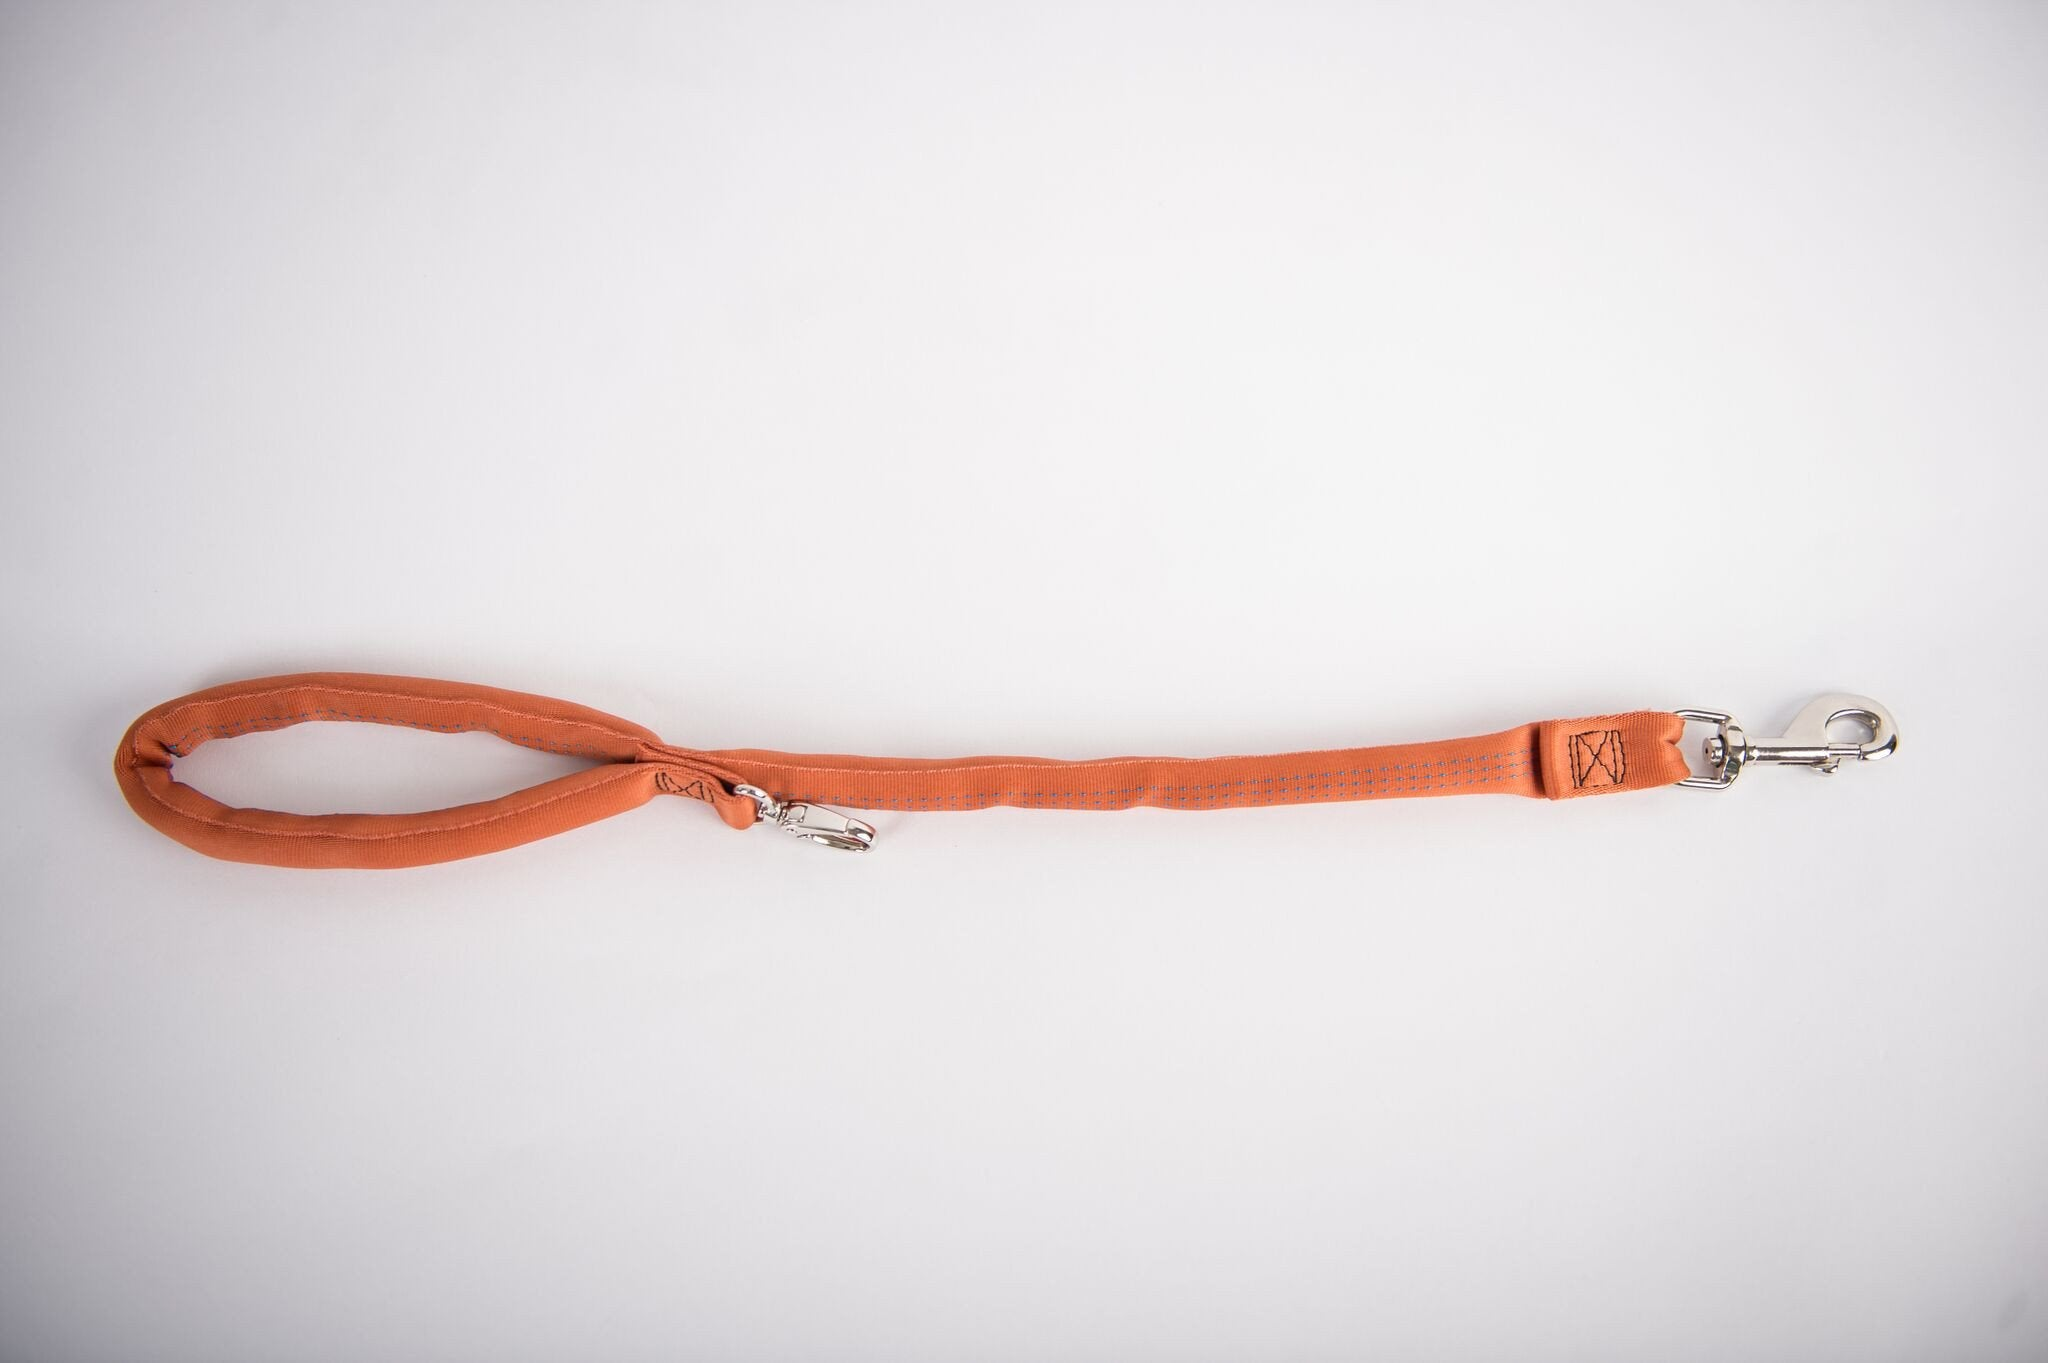 Copper-Luv My Leash, 2-6 Foot option ,Lightweight, Padded,Dual Snap, 5 Leashes in 1 ,Made in U.S.A.